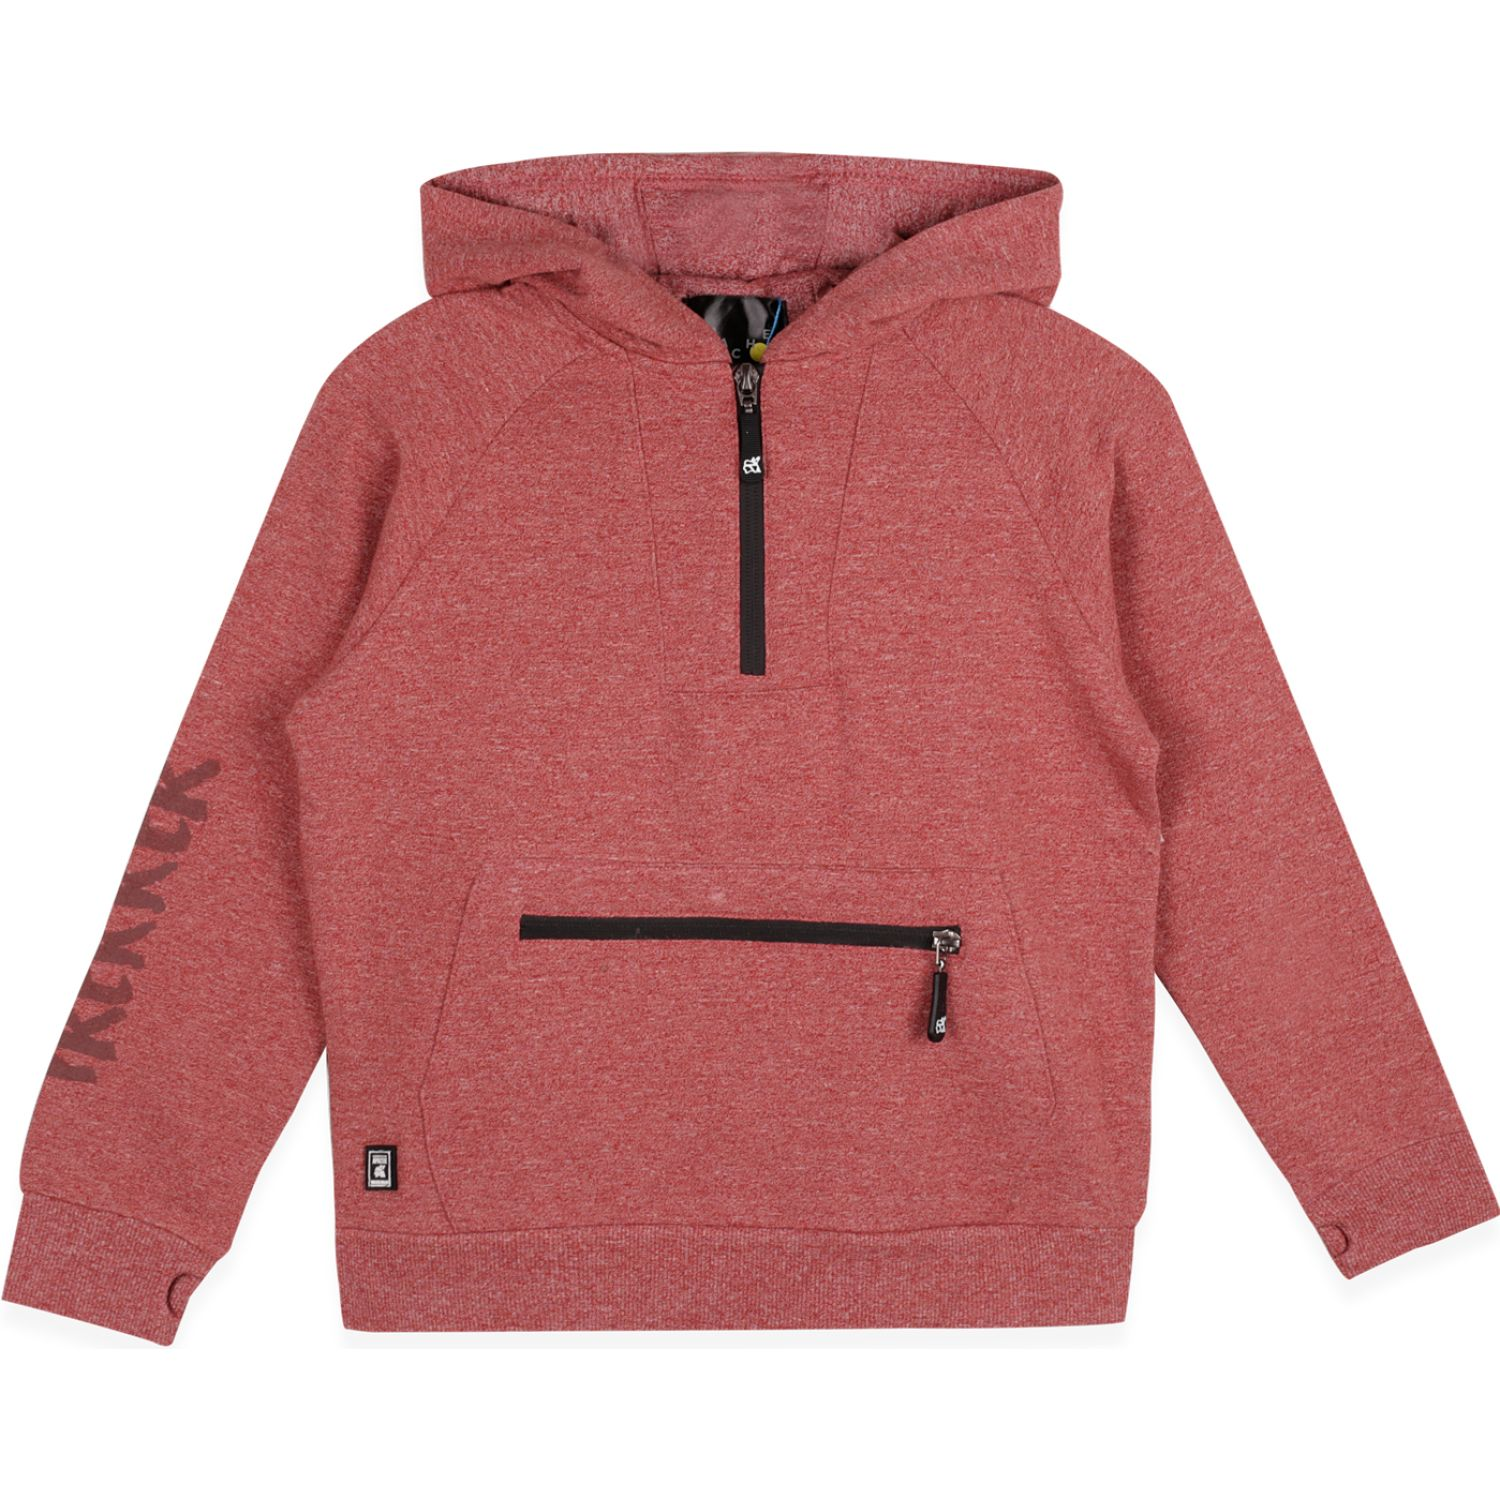 PILLIN Polerón Niño Burdeo Hoodies y Sweaters Fashion